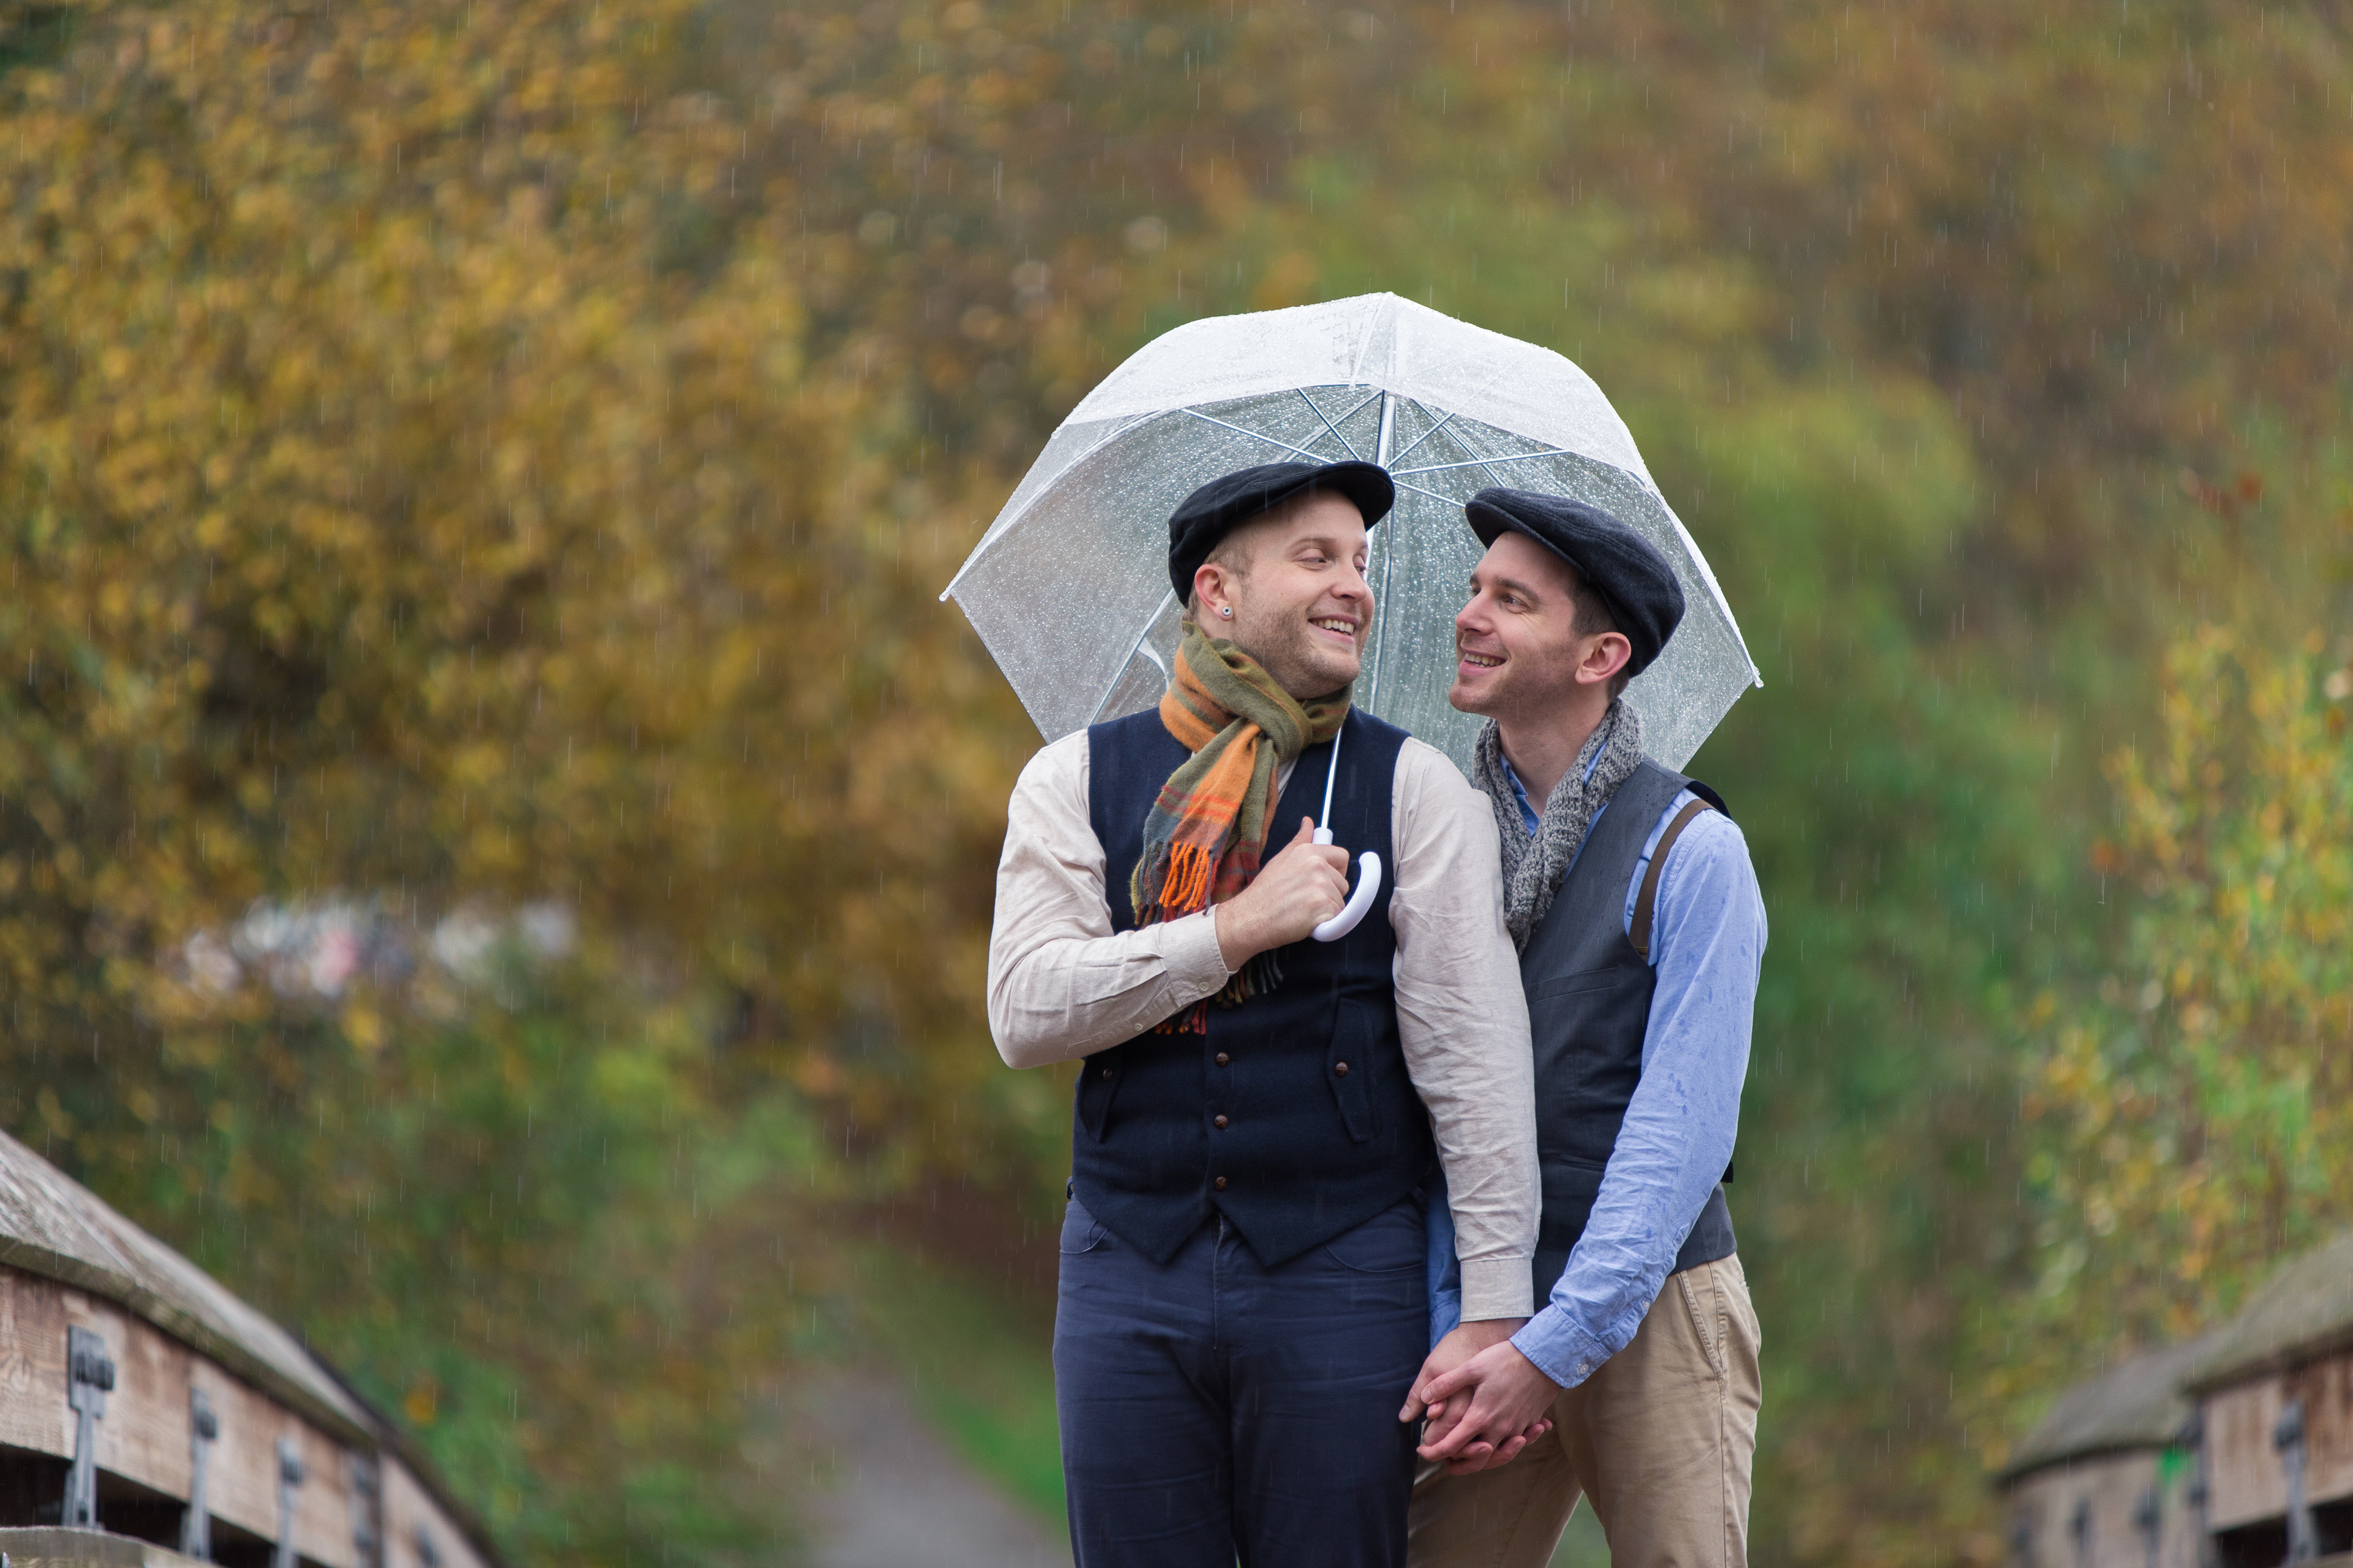 arboretum engagement, same sex engagement, gay engagement seattle, same sex engagement seattle, rainy day seattle engagement, beautiful fall engagement